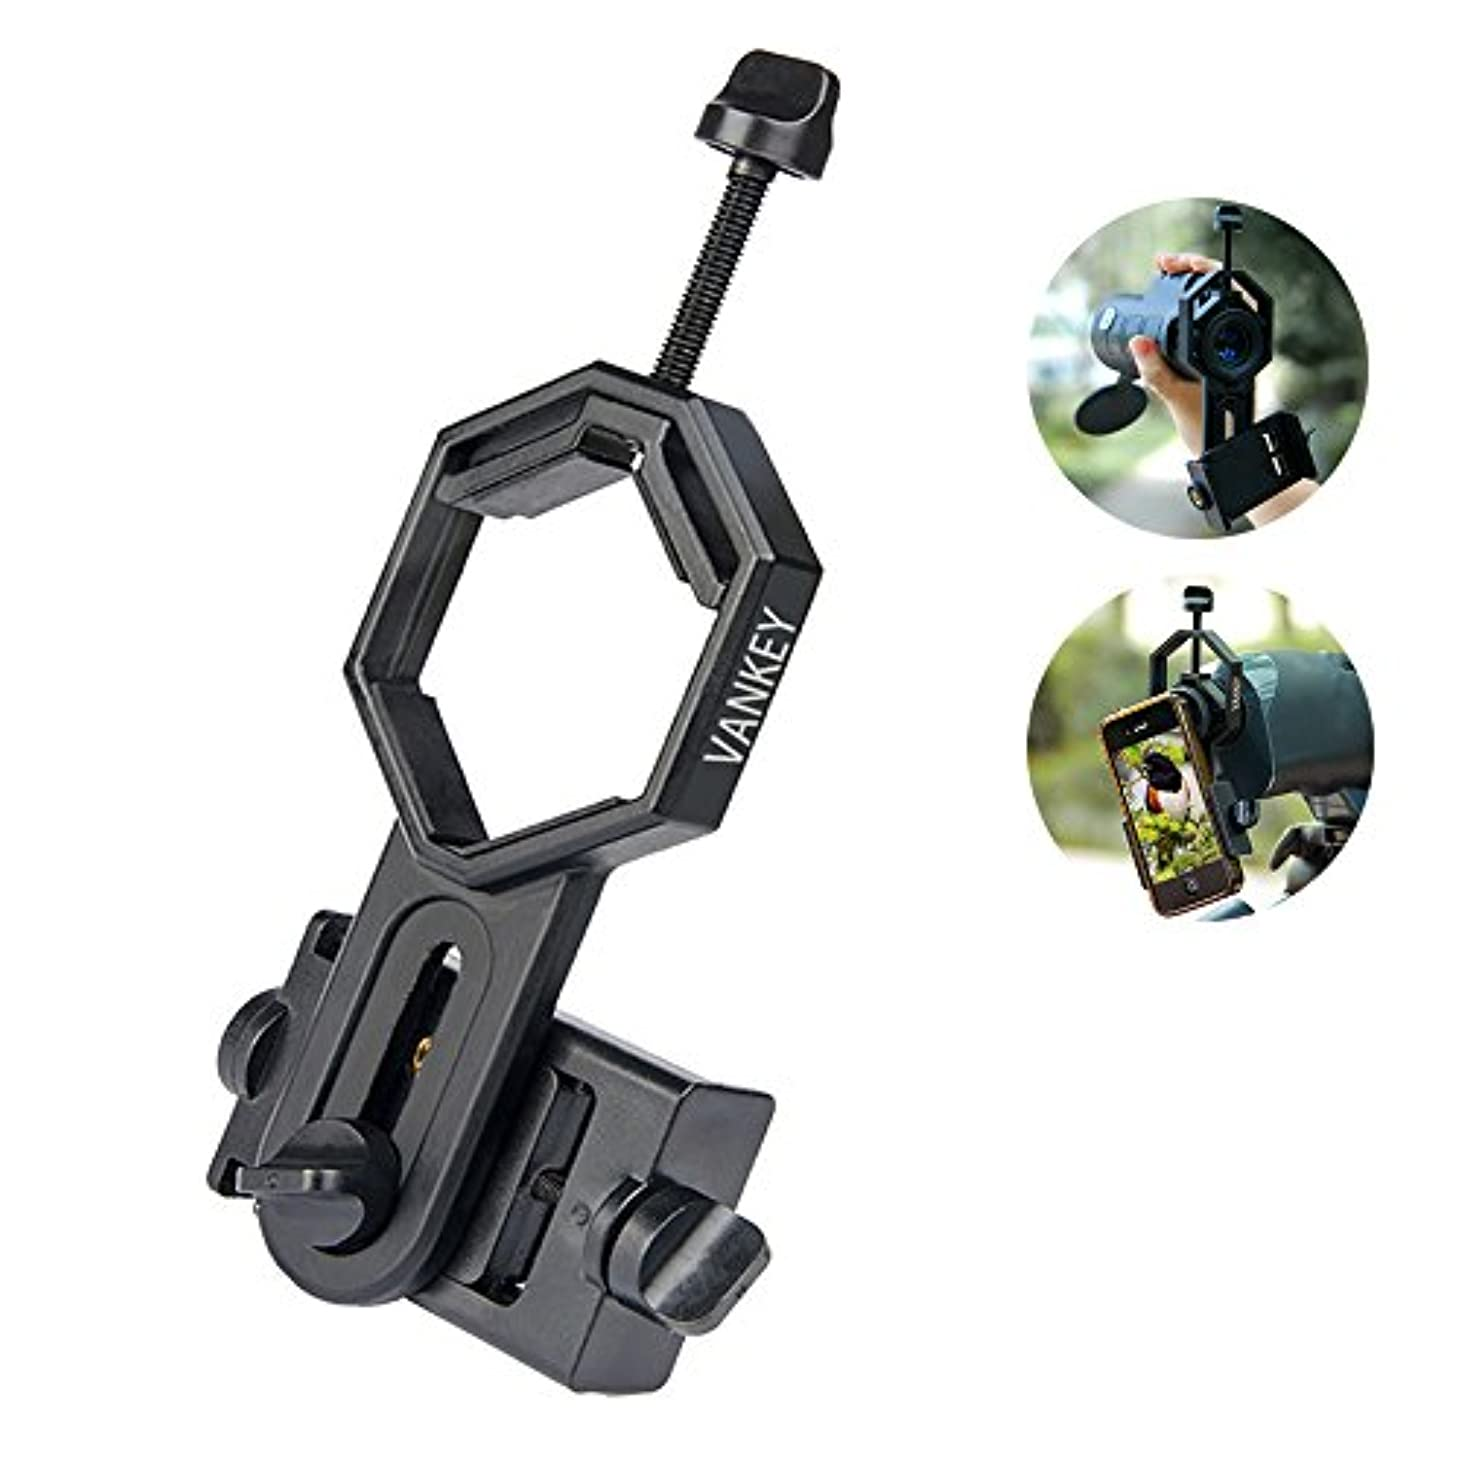 Vankey Cellphone Telescope Adapter Mount, Work with Binocular Monocular Spotting Scope Microscope for iPhone, Samsung, HTC, LG and More